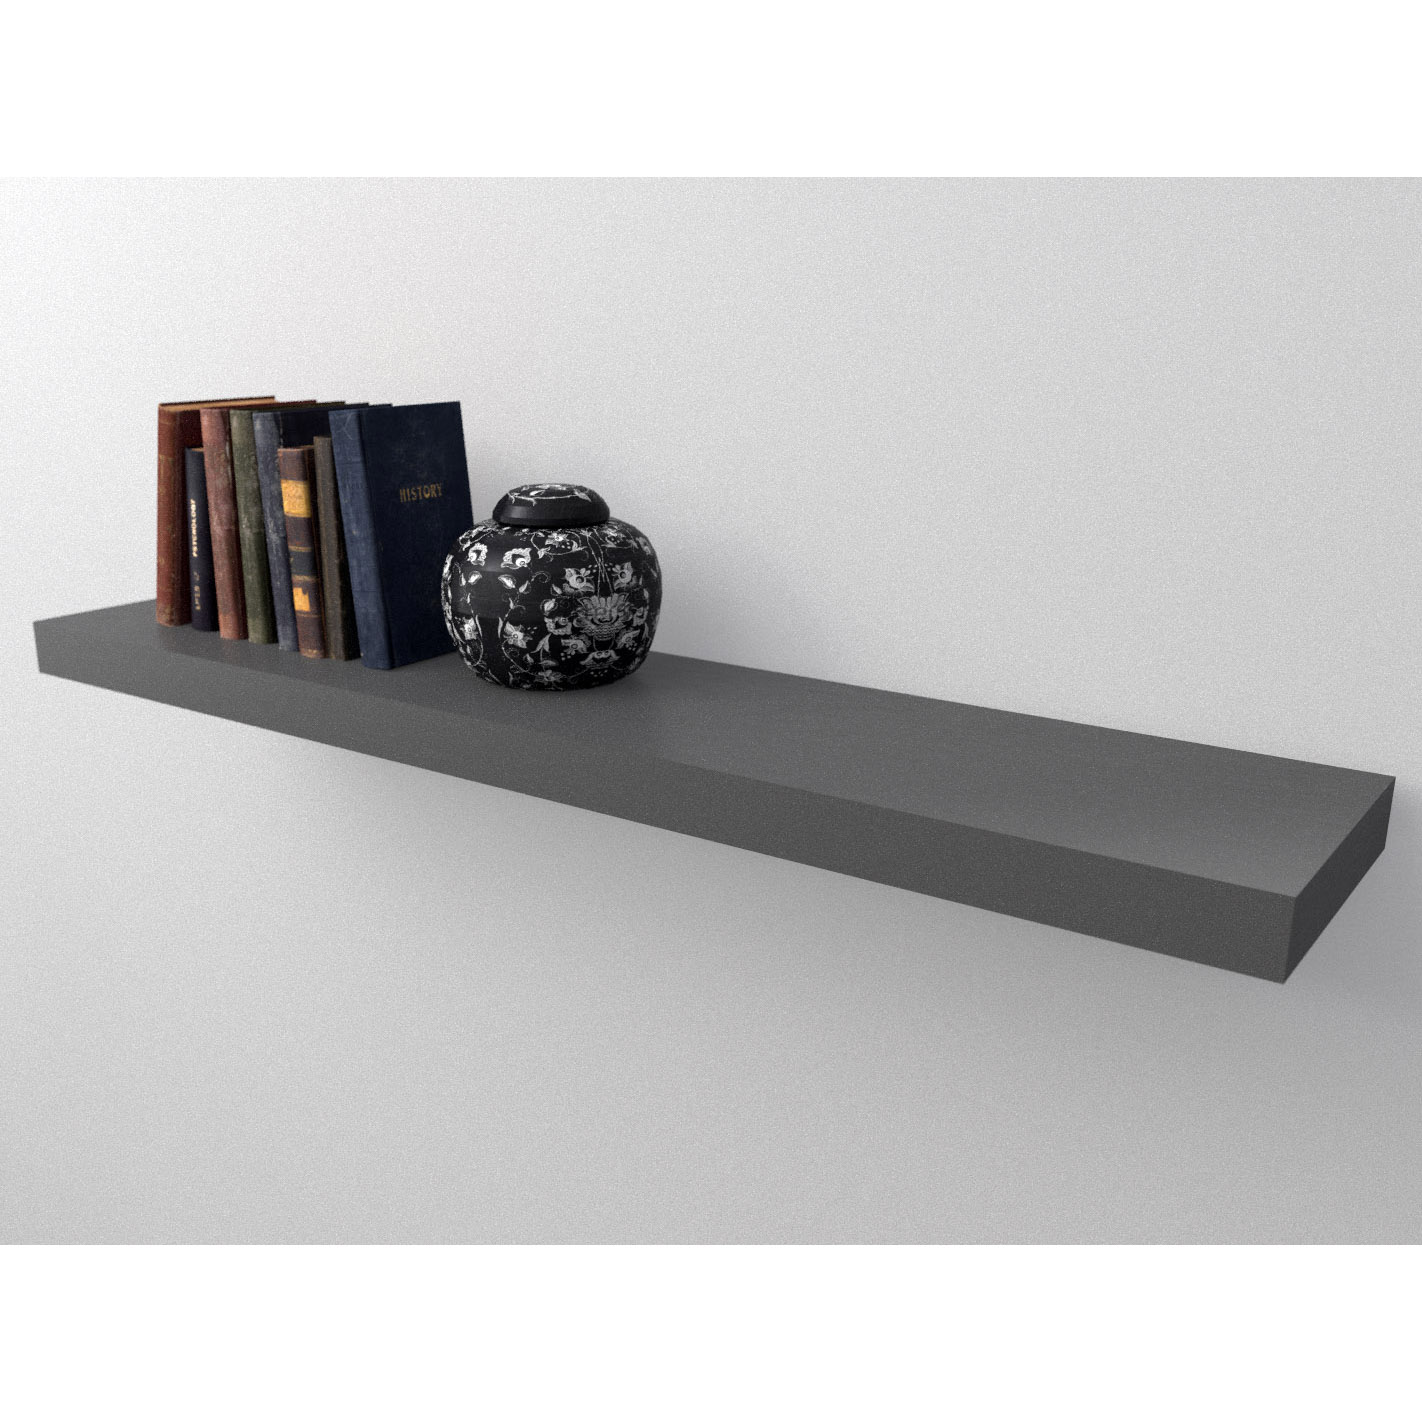 gray wall shelf pmpresssecretariat stone grey floating shelves gloss dark kit mastershelf heavy coat rack white cube glass hinges faux fireplace surround without sides shelving